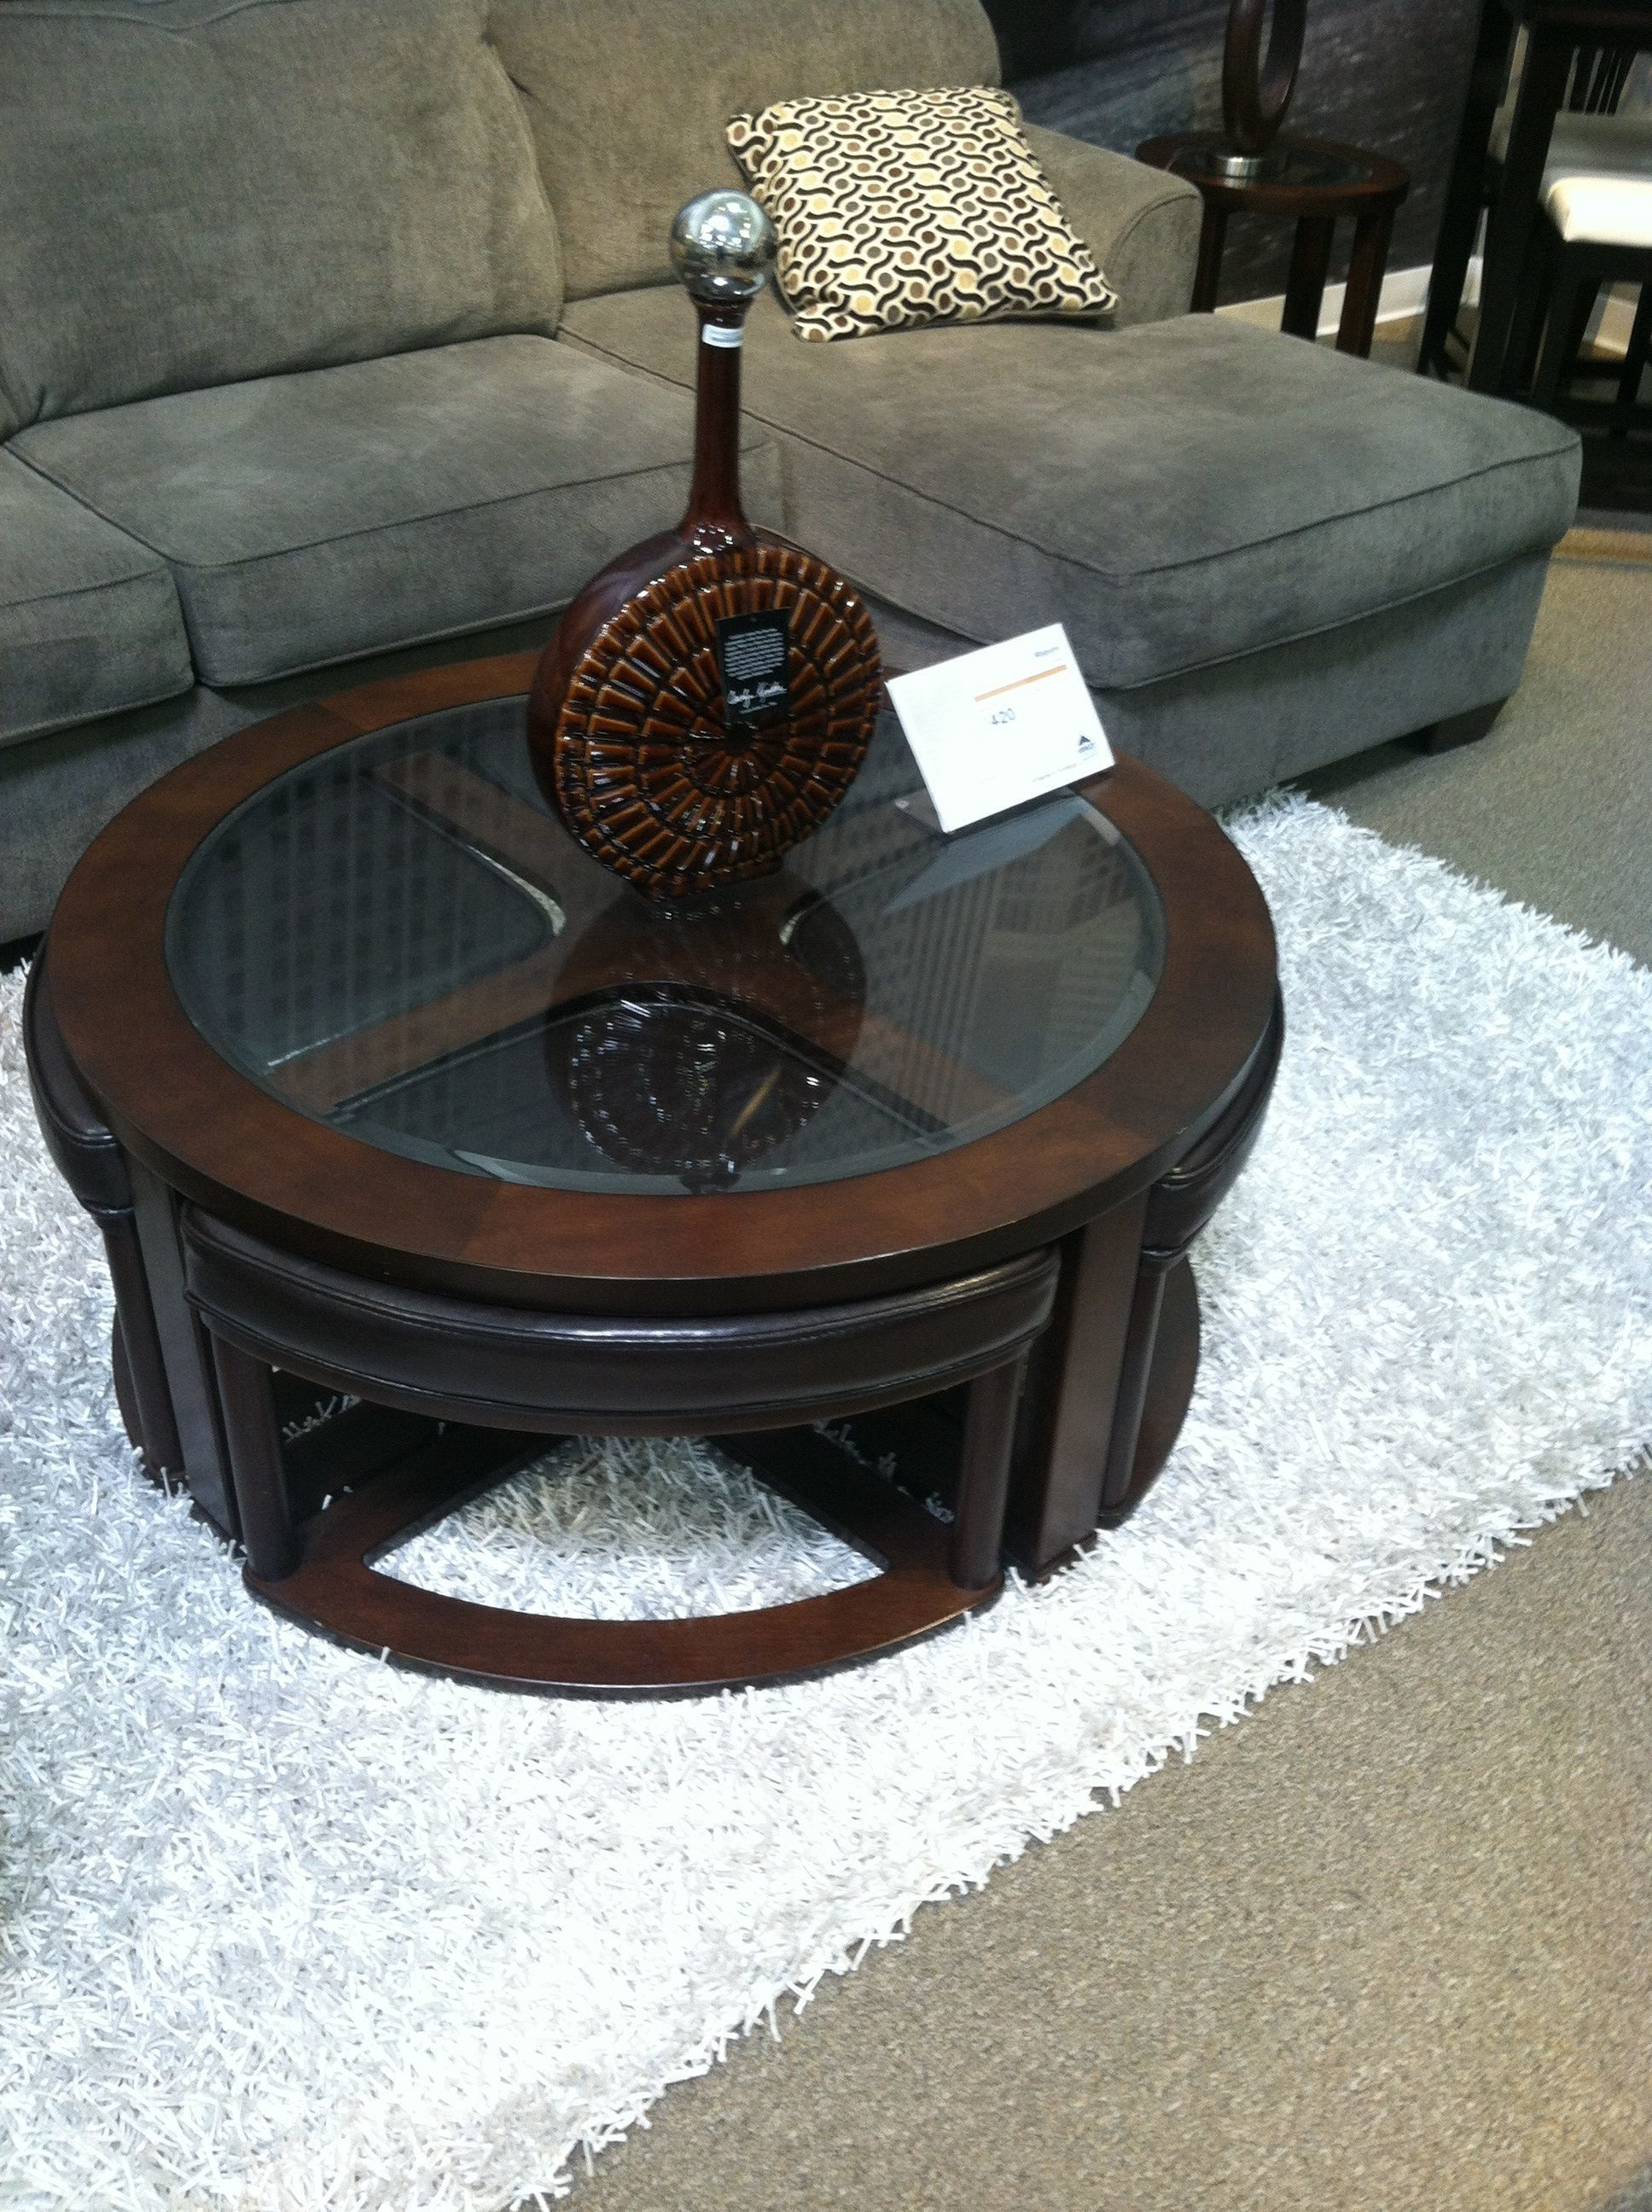 Ashley Furniture Lancaster Pa #23: My Husband And I Purchase Some New Furniture From Ashley Furniture In The Beginning Of December. They Assure Us That We Will Have Our Furniture Before ...